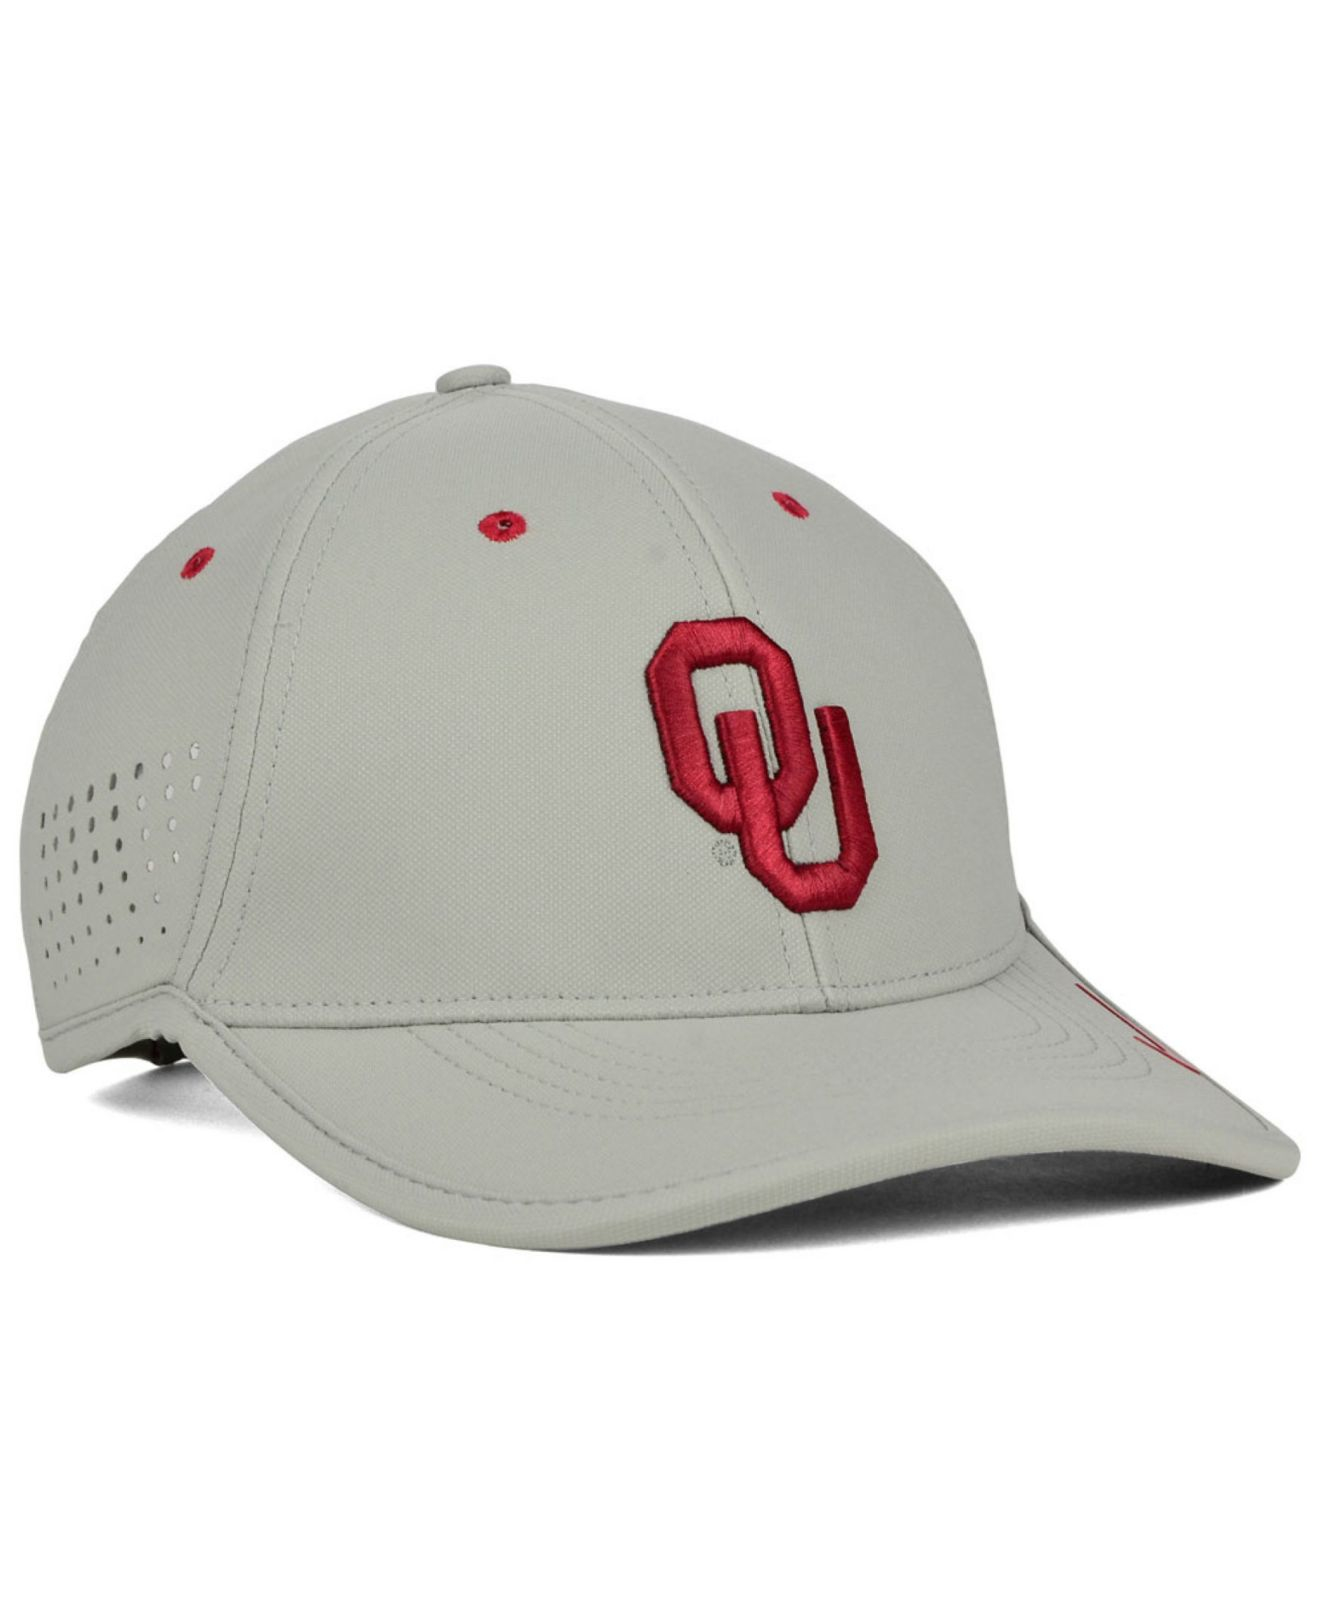 ... inexpensive lyst nike oklahoma sooners dri fit coaches cap in gray for  men 03e89 17a2e 151cccb89861